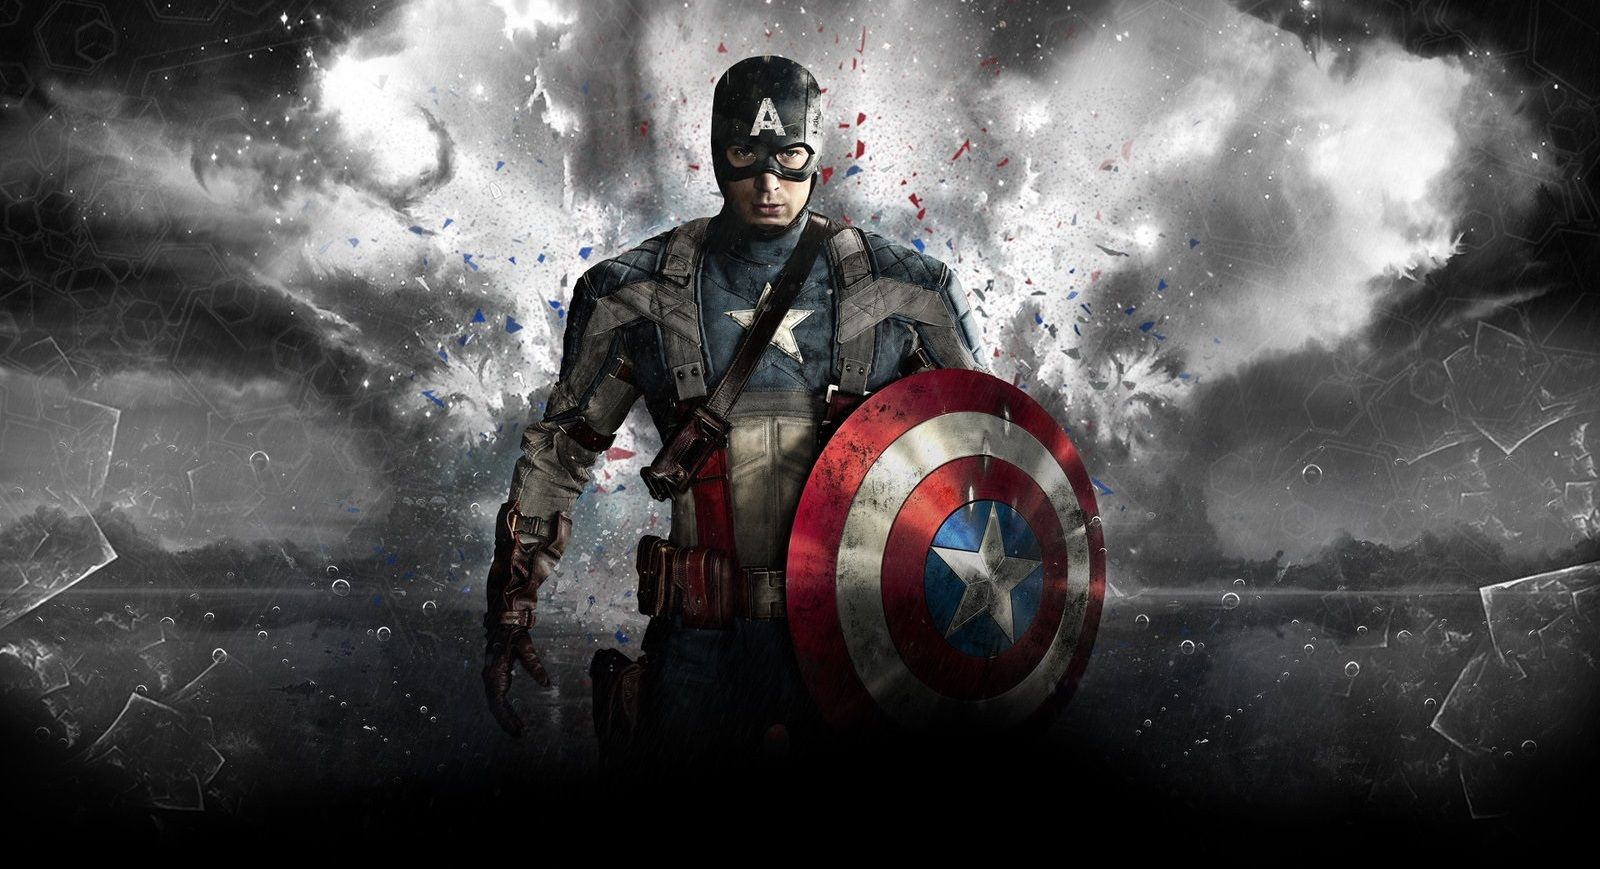 marvel super hero captain america first avenger background hd wallpaper